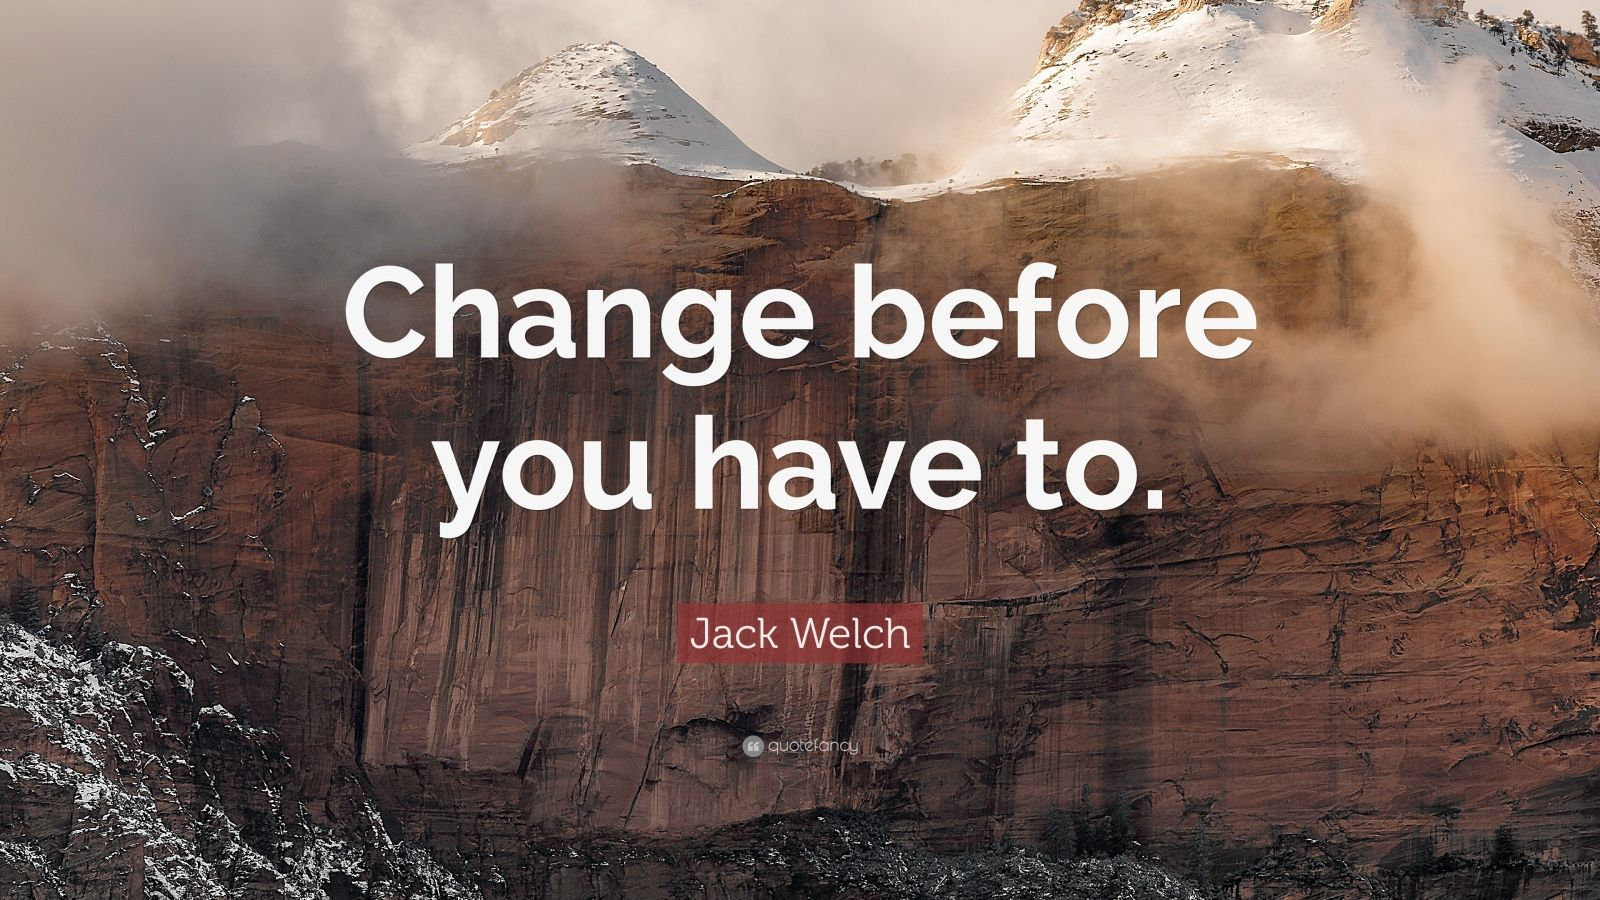 Quotes On Success Wallpapers Jack Welch Quote Change Before You Have To 22